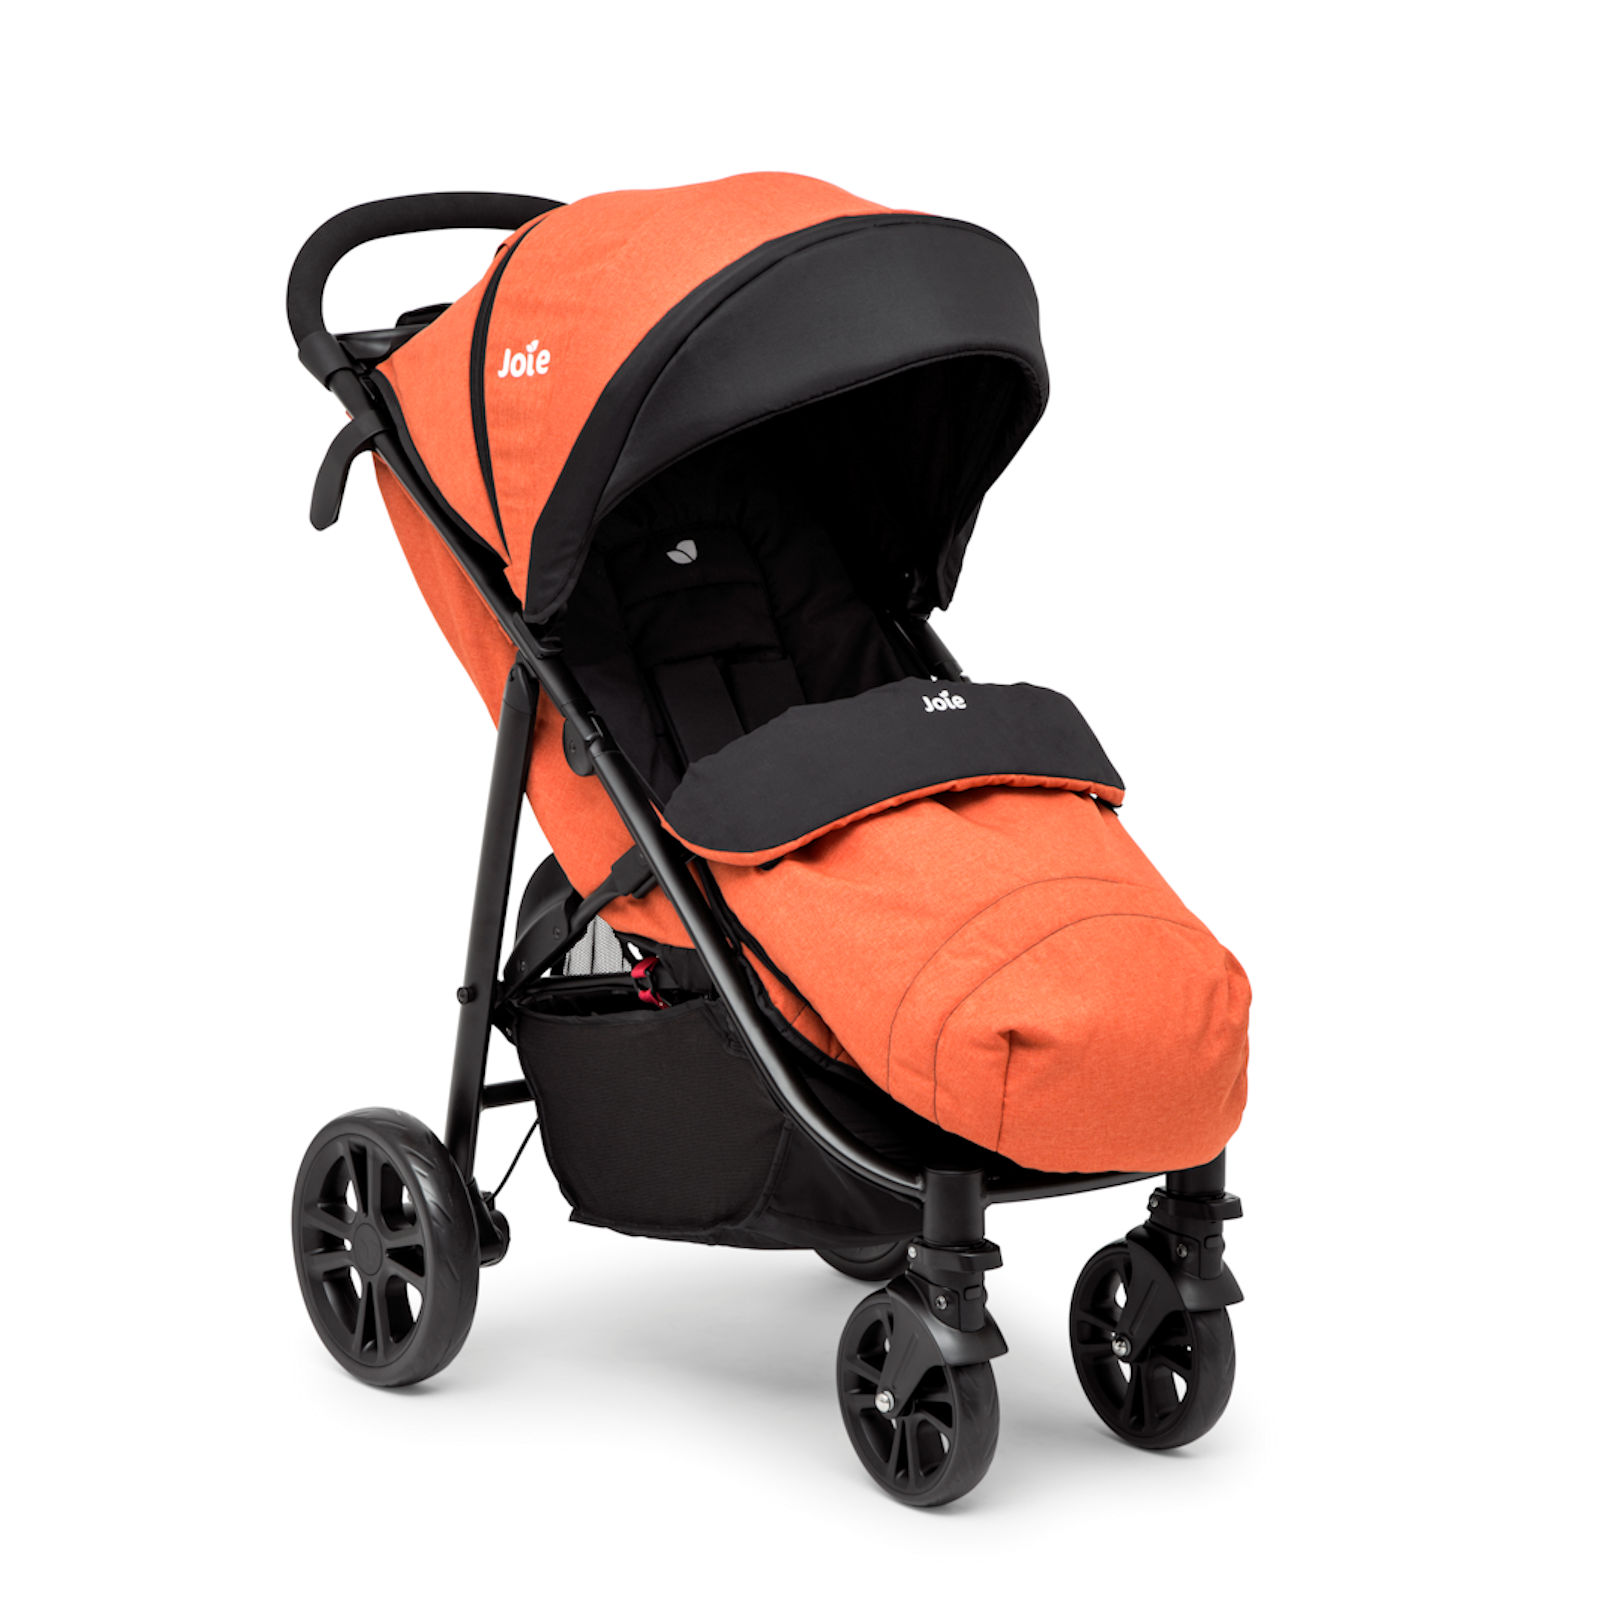 joie litetrax 4 wheel pushchair stroller with footmuff and raincover rust ebay. Black Bedroom Furniture Sets. Home Design Ideas